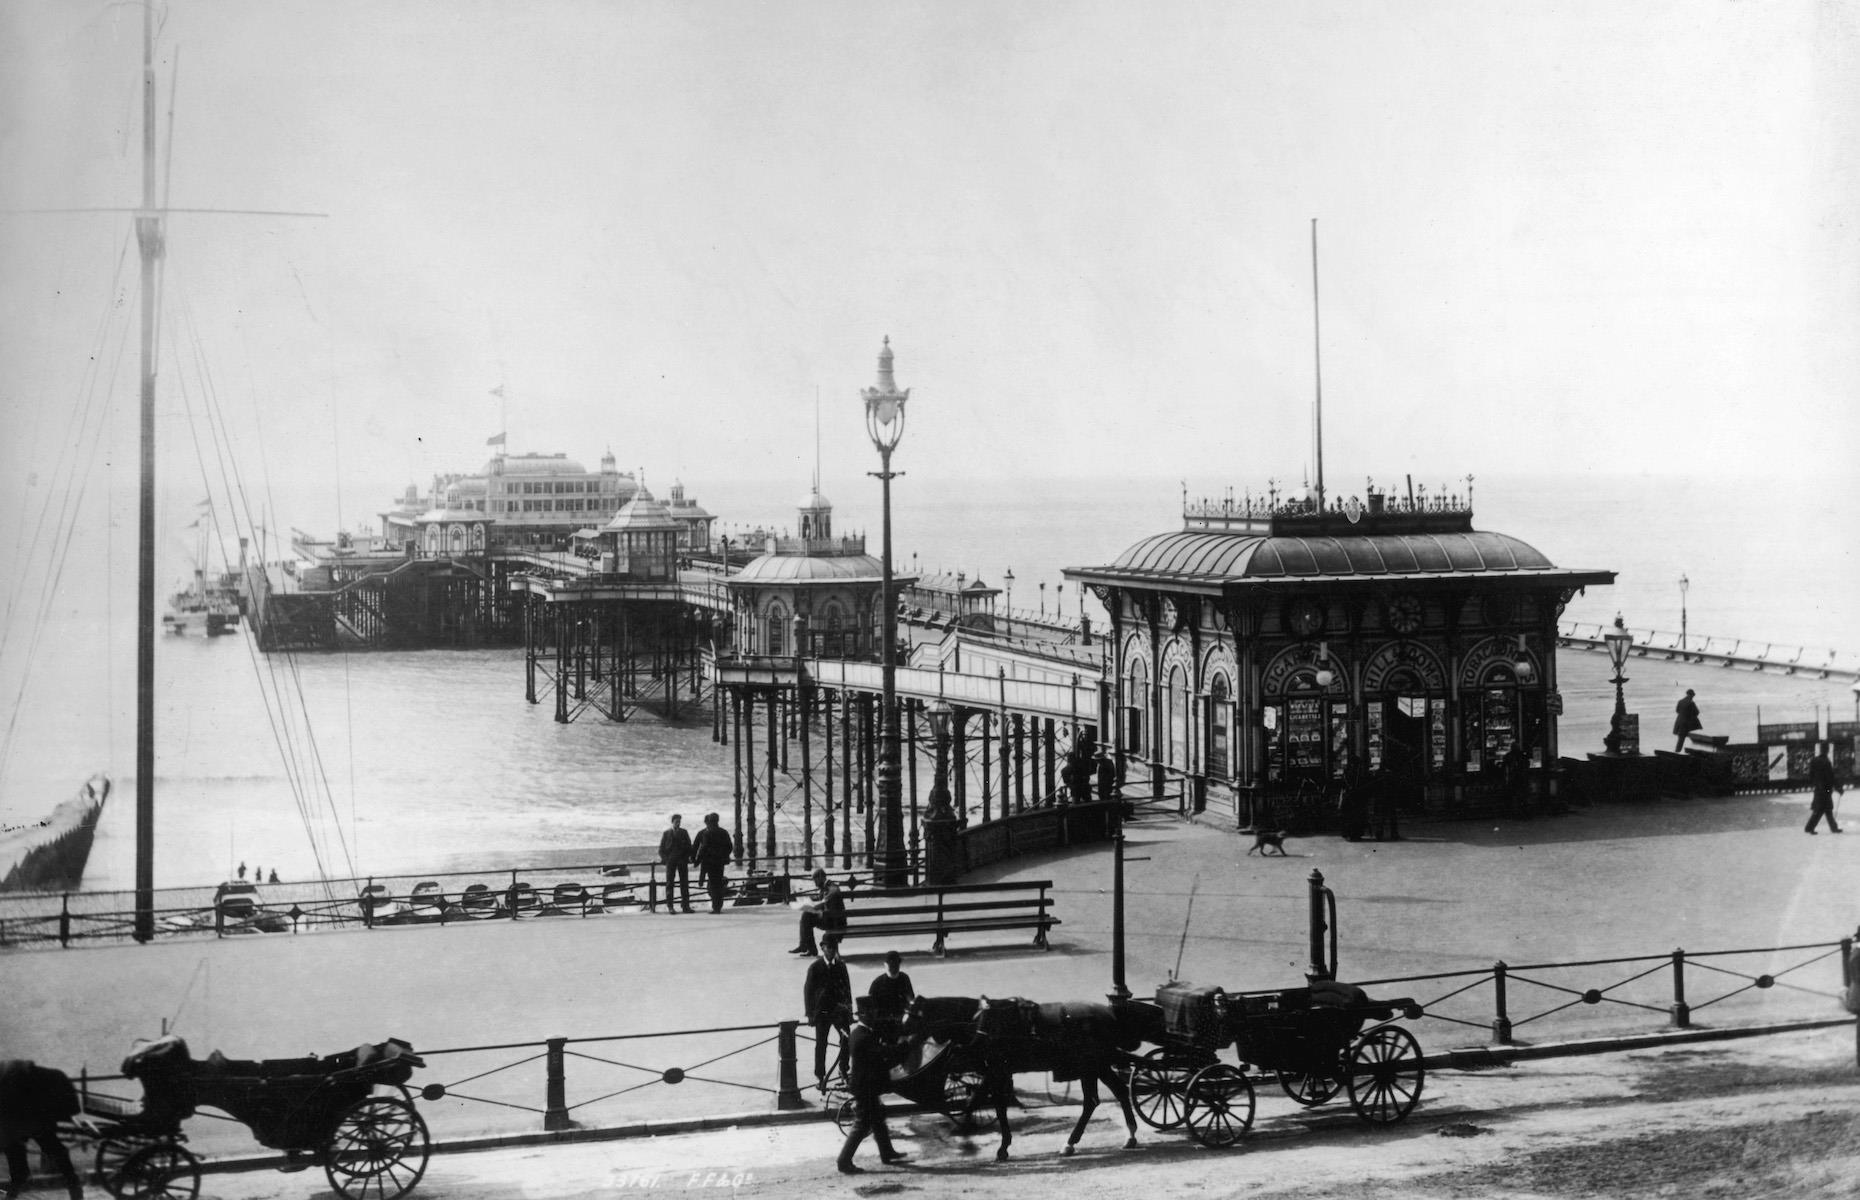 Slide 8 of 31: Brighton's West Pier opened to great fanfare in 1866 during the Victorian boom for beach vacations. An archetypal example of UK seaside architecture, the pier was added to over the years and at its prime featured a concert hall, funfair and tearoom. It was extremely popular in the late 19th and early 20th centuries and became a much-loved landmark on the Brighton seafront. The West Pier fell into financial decline in the 1960s, before closing in 1975 and falling into disrepair.